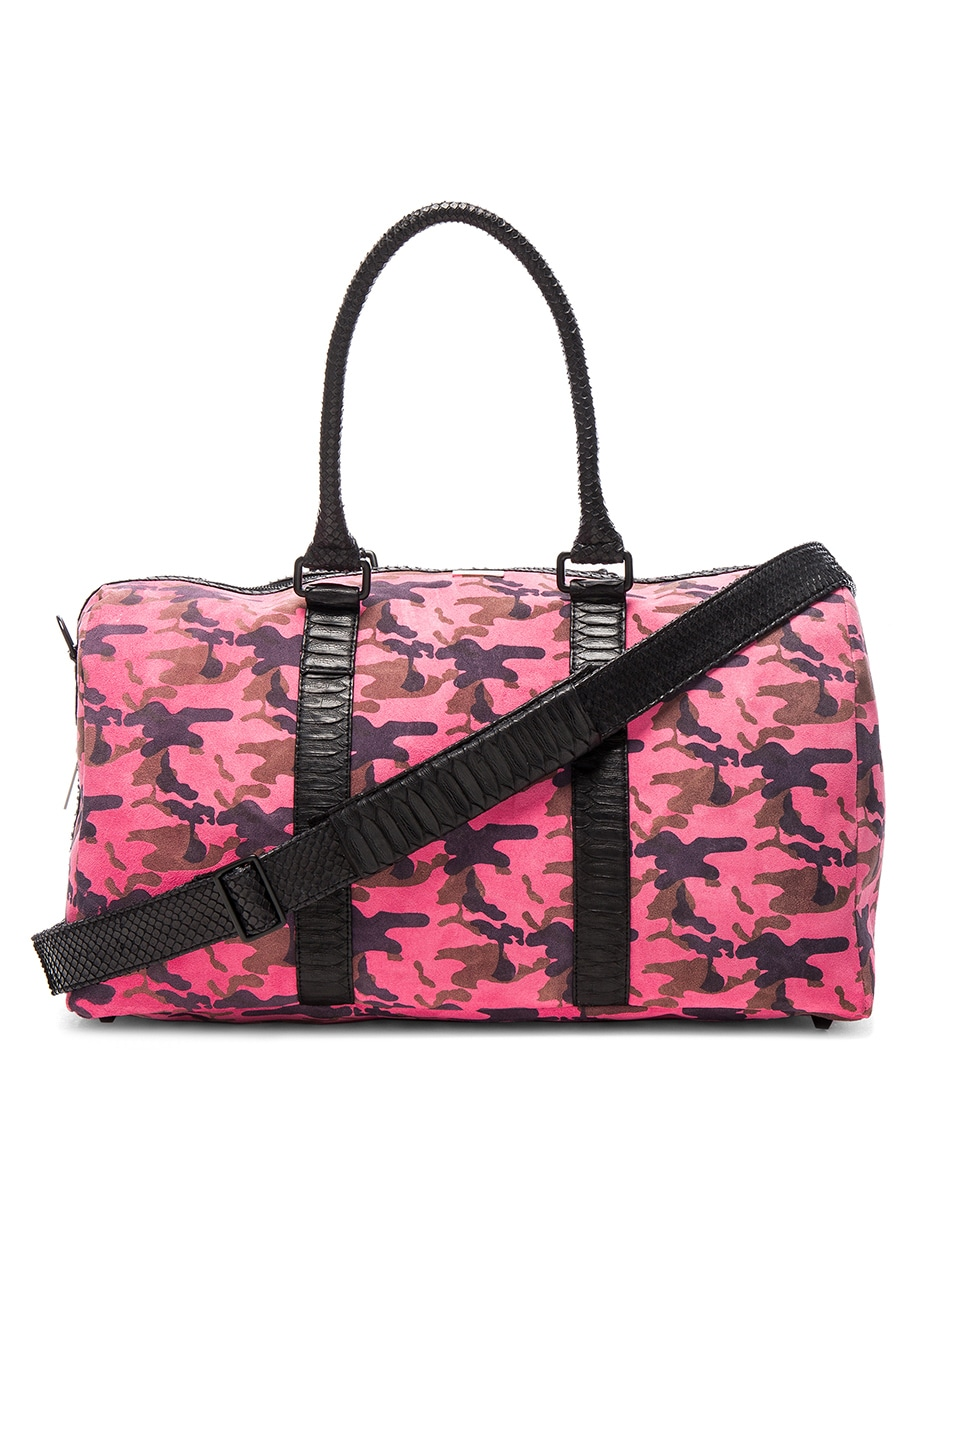 Image 1 of Elisabeth Weinstock Sardinia Duffle Bag in Pink Camo & Black Straps